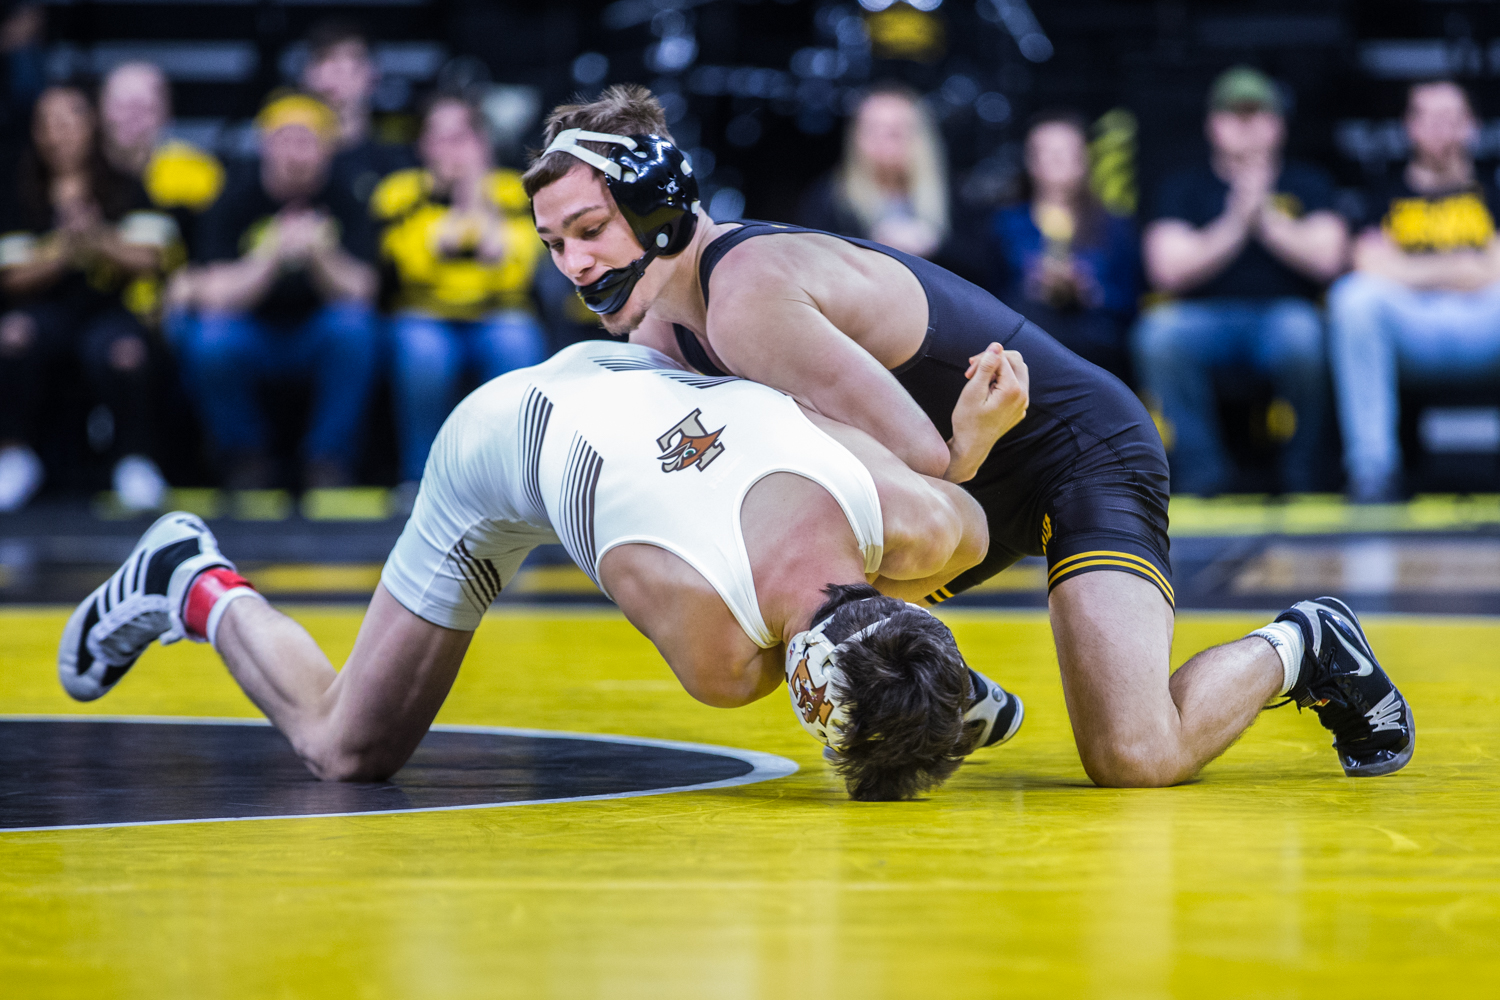 Iowa's Spencer Lee wrestles Lehigh's Luke Resnick during a wrestling dual-meet between Iowa and Lehigh at Carver-Hawkeye Arena on Saturday, Dec. 8, 2018. Lee, who is top ranked at 125, defeated Resnick 15-0, and the Hawkeyes defeated the Mountain Hawks, 28-14.